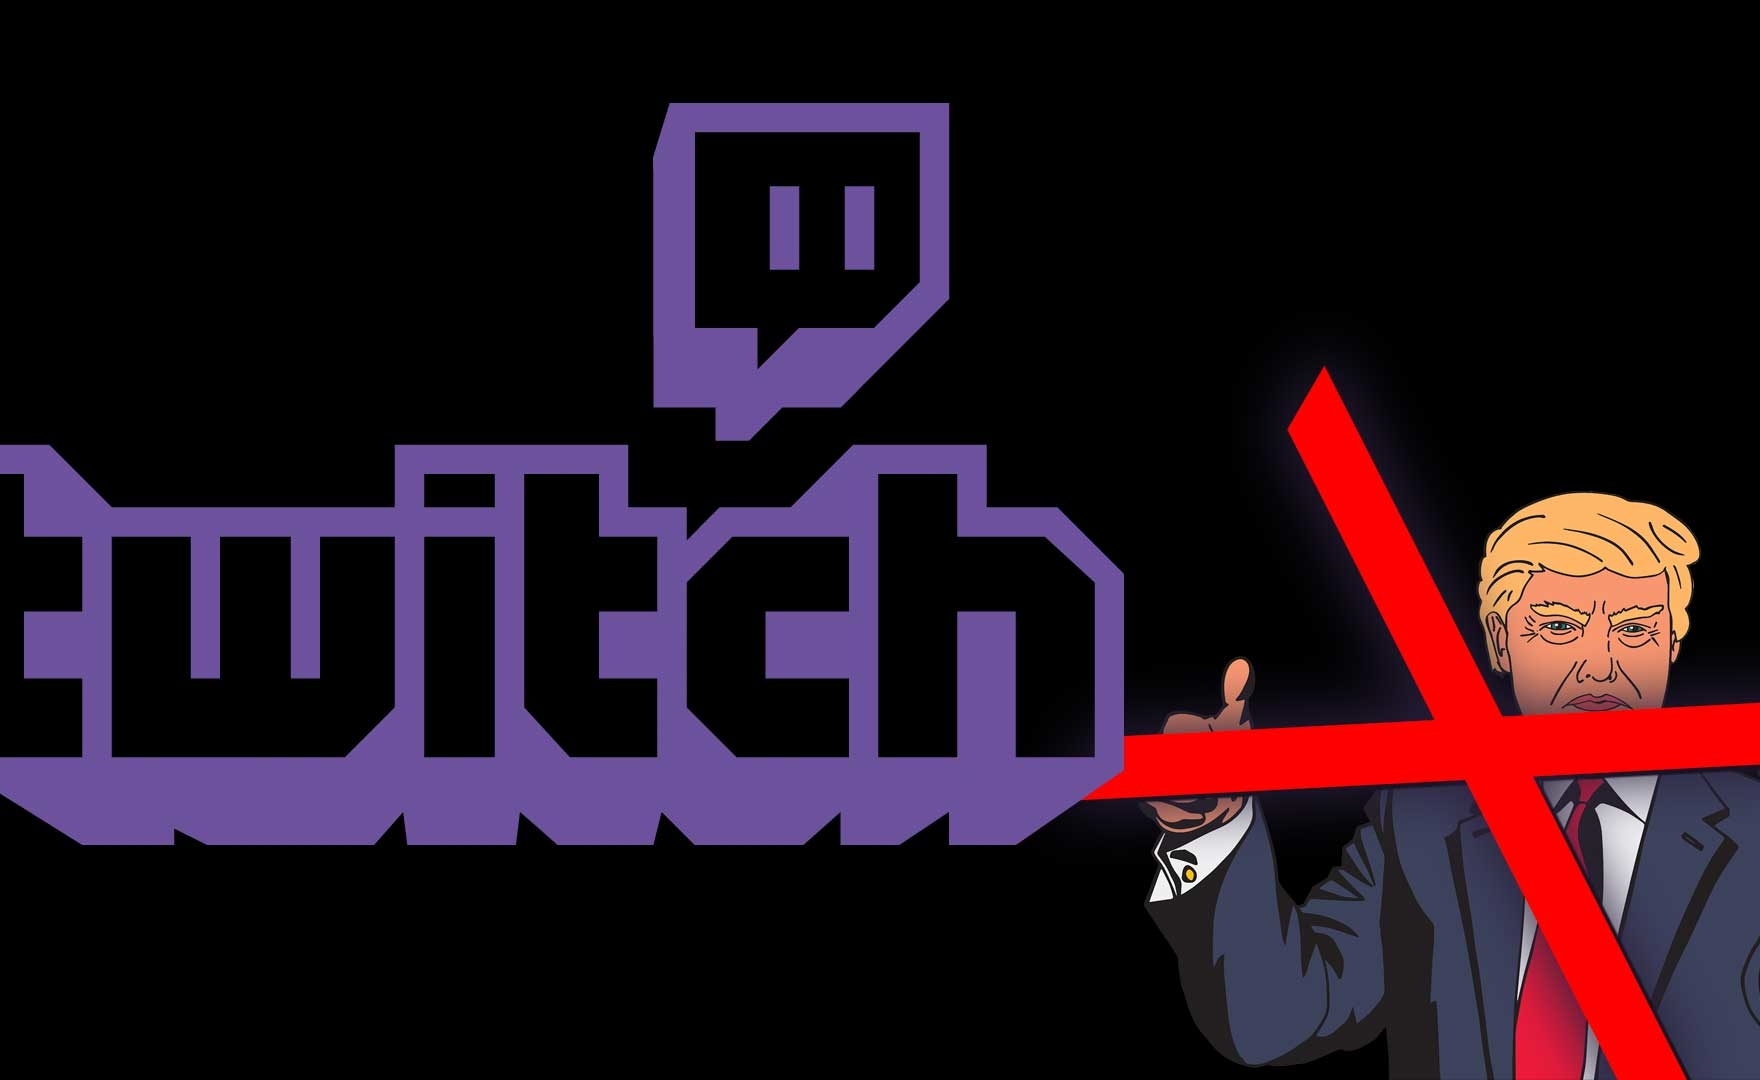 Twitch, Donald Trump bannato per incitamento all'odio